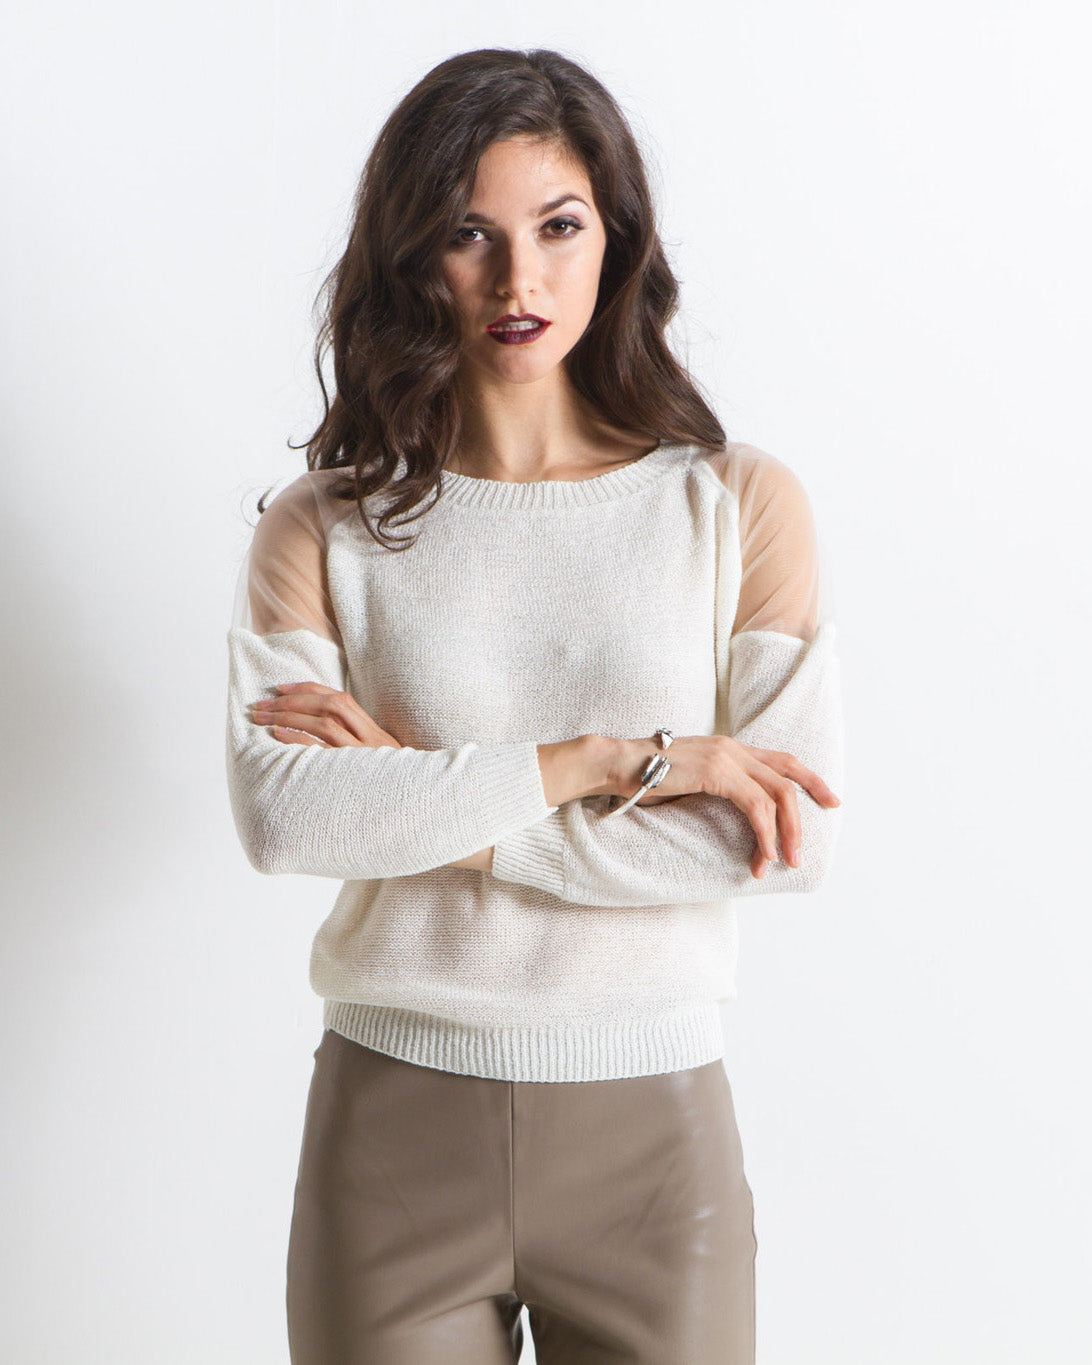 Caroline Mesh Cut Out Shoulders Sweater (White)